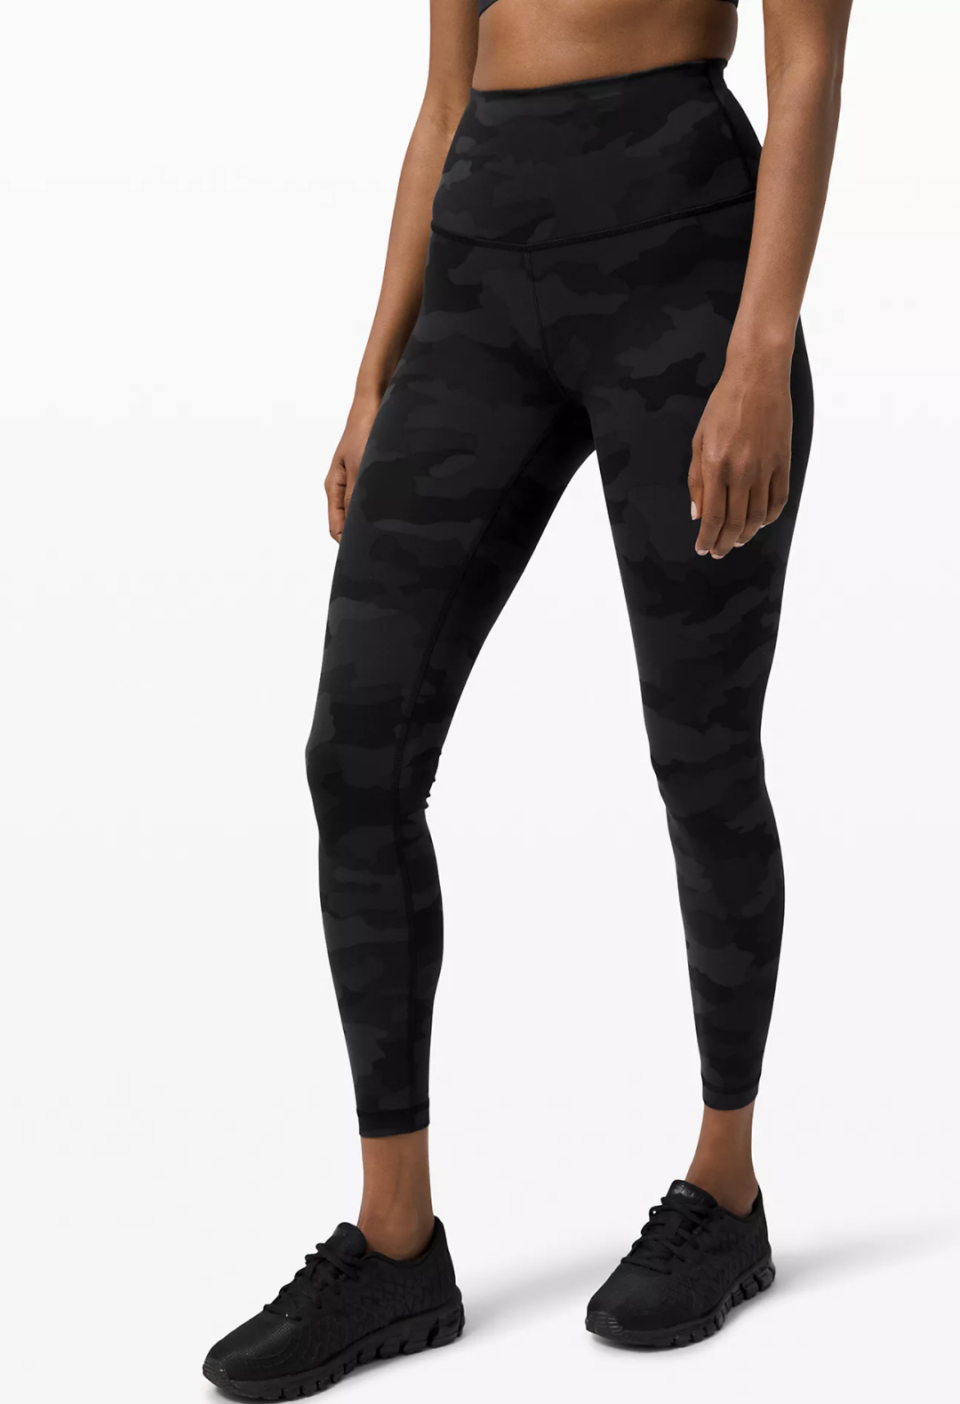 Wunder Train High-Rise - Lululemon, $98.